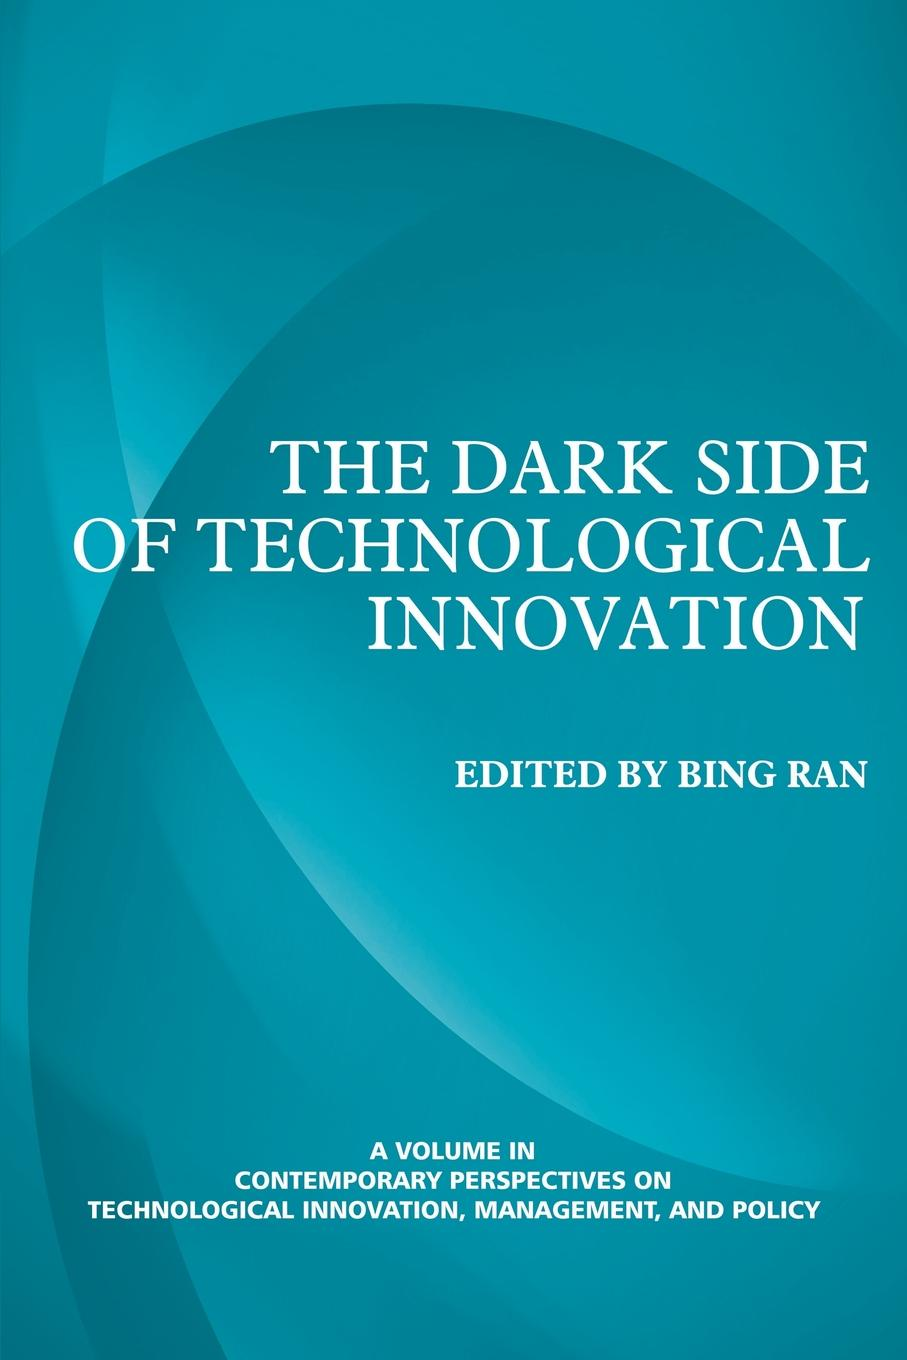 The Dark Side of Technological Innovation boris shulitski the ideological foundations of technological singularity